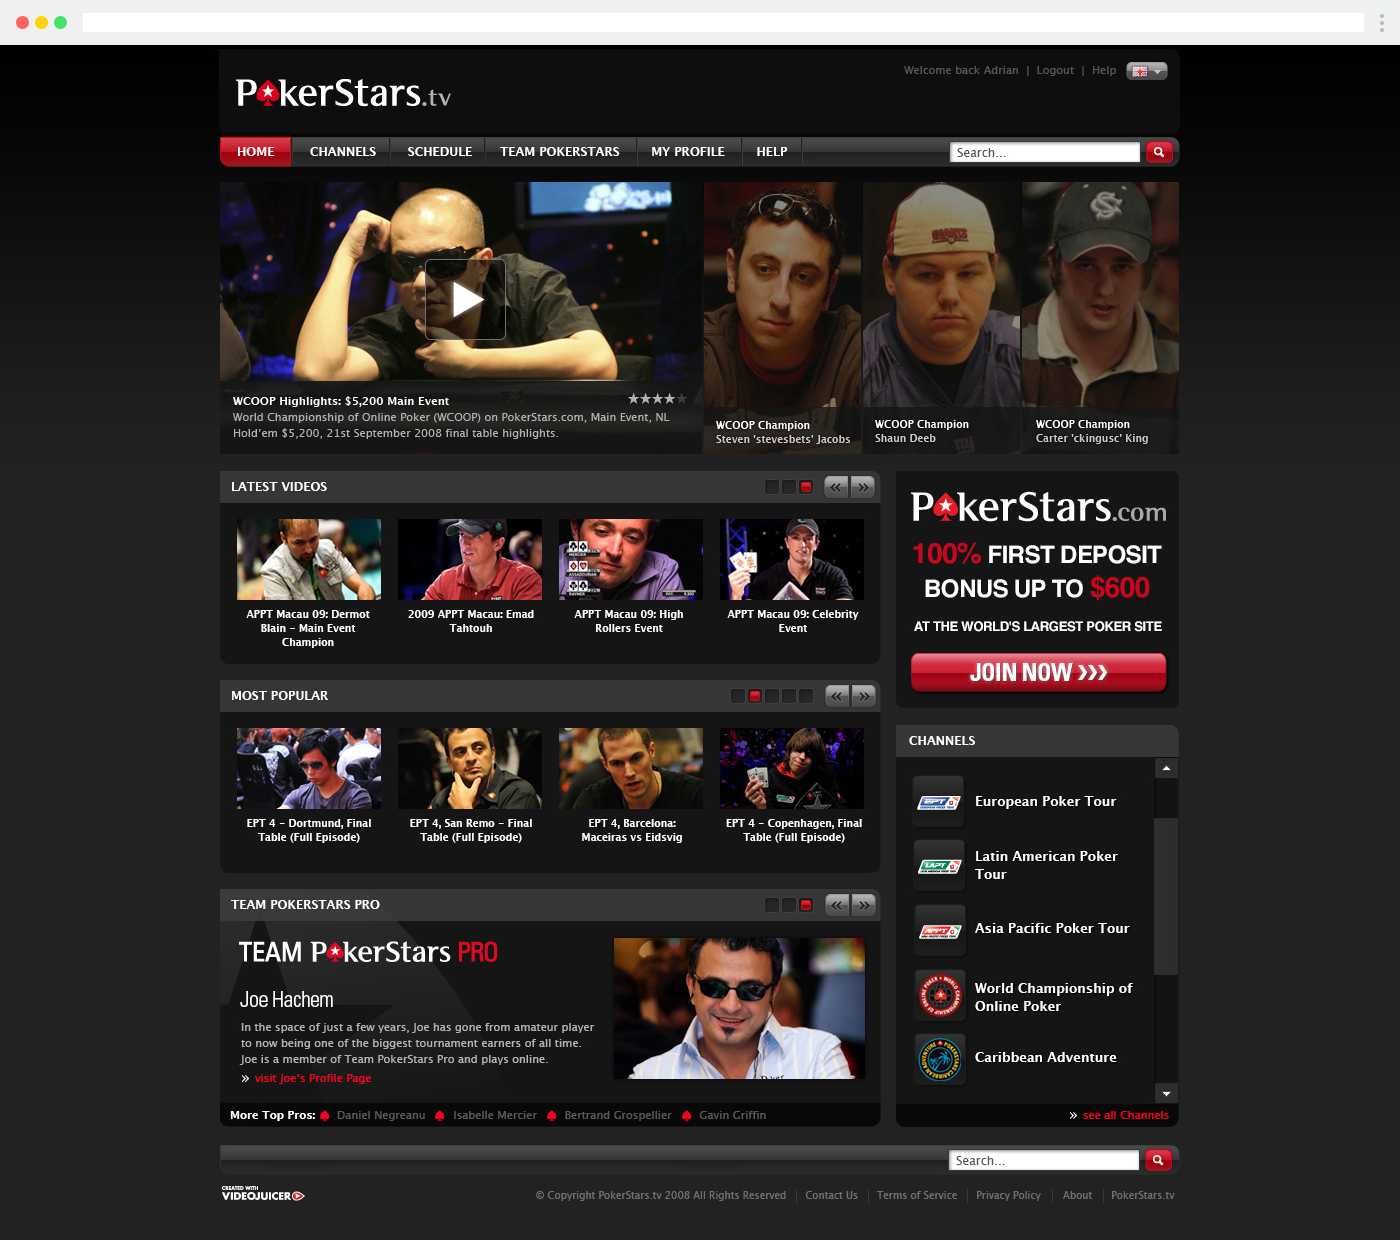 Pokerstars.tv homepage